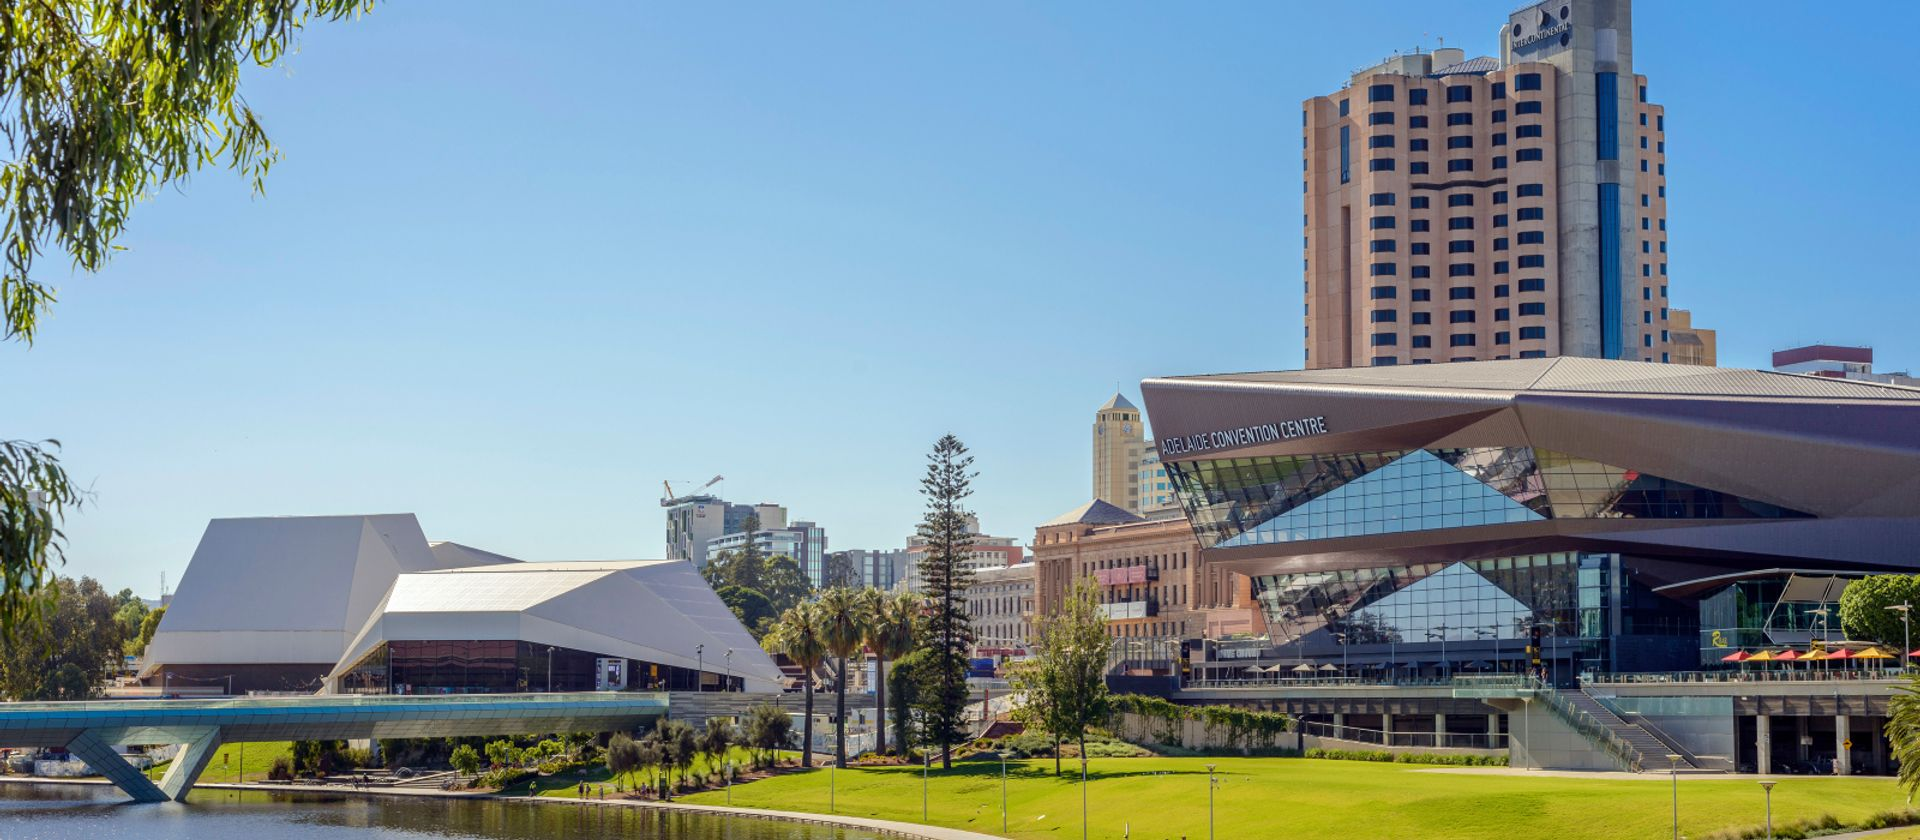 cityscape of Adelaide